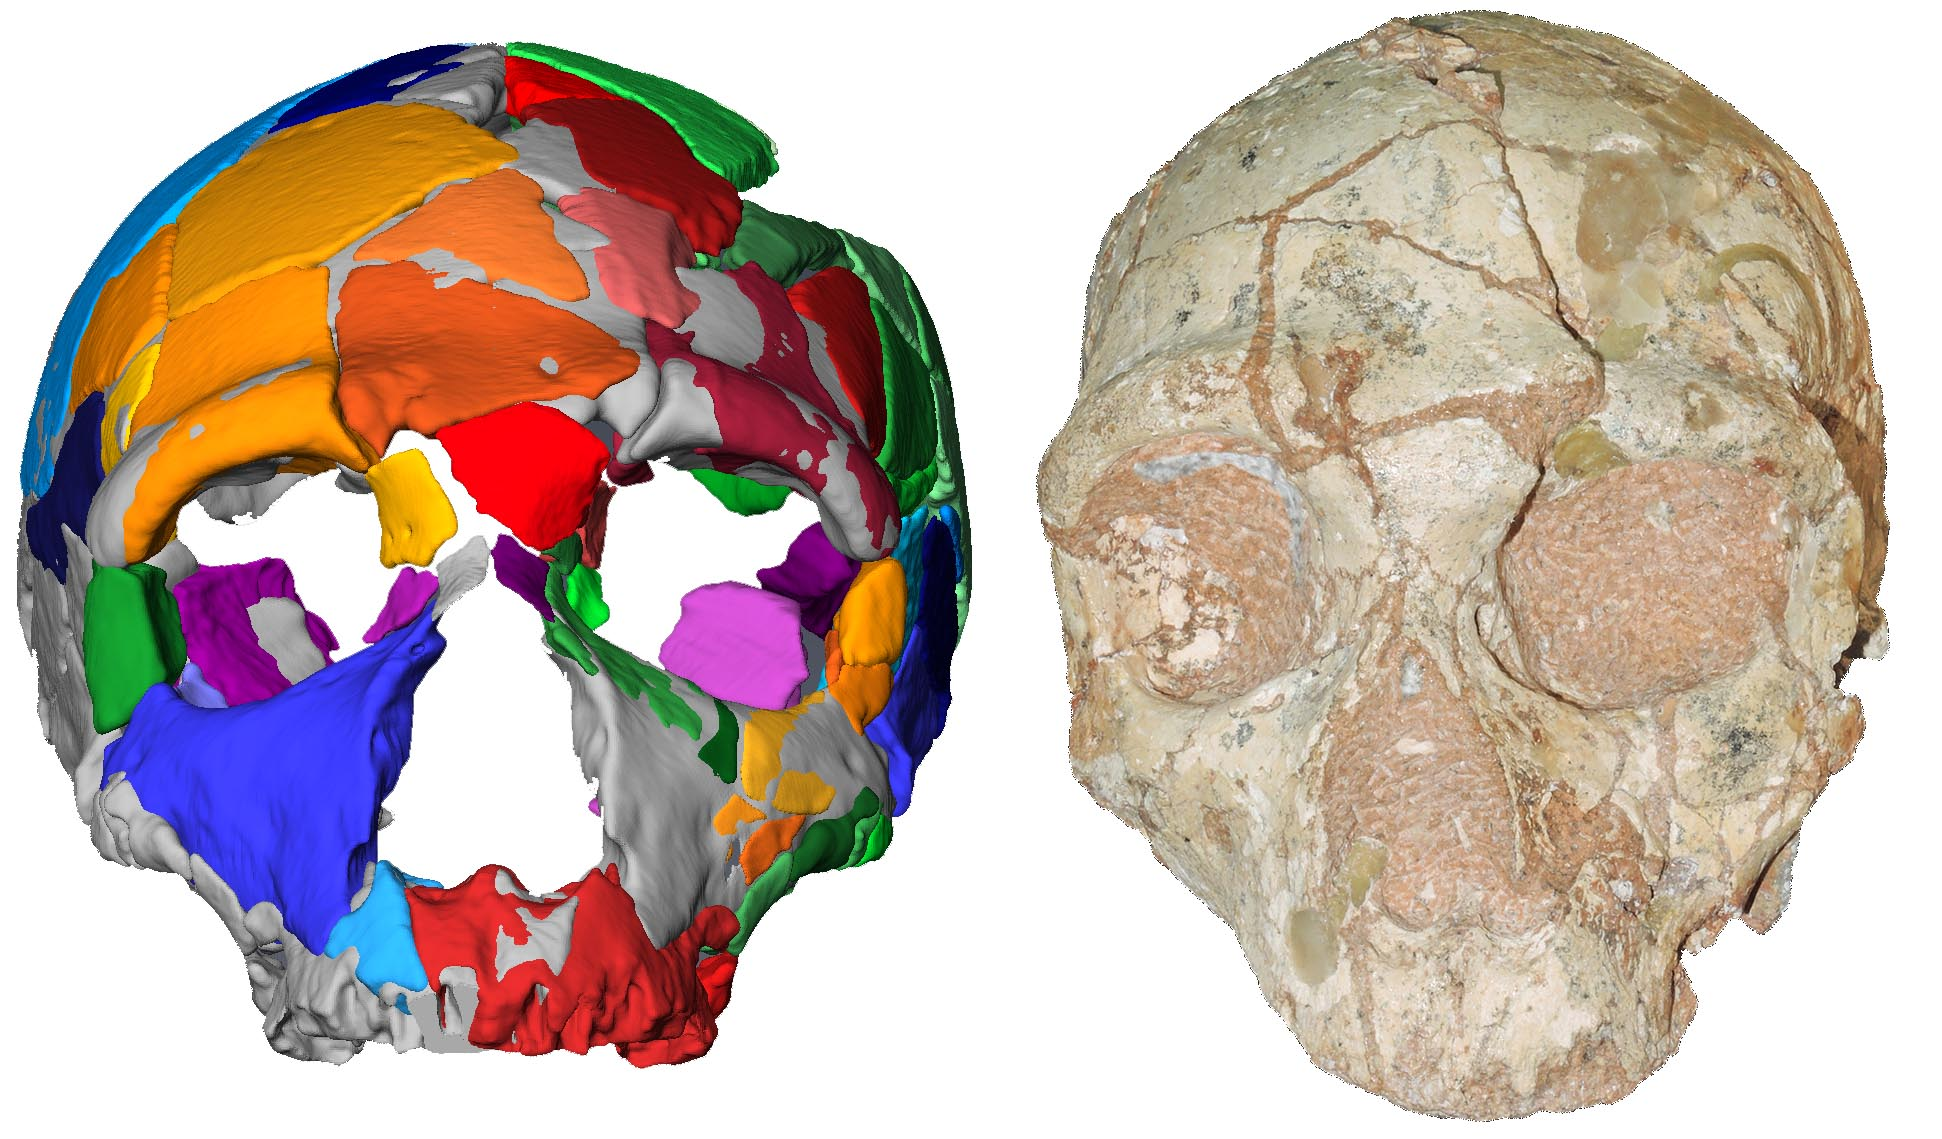 Neanderthal skull and its reconstruction